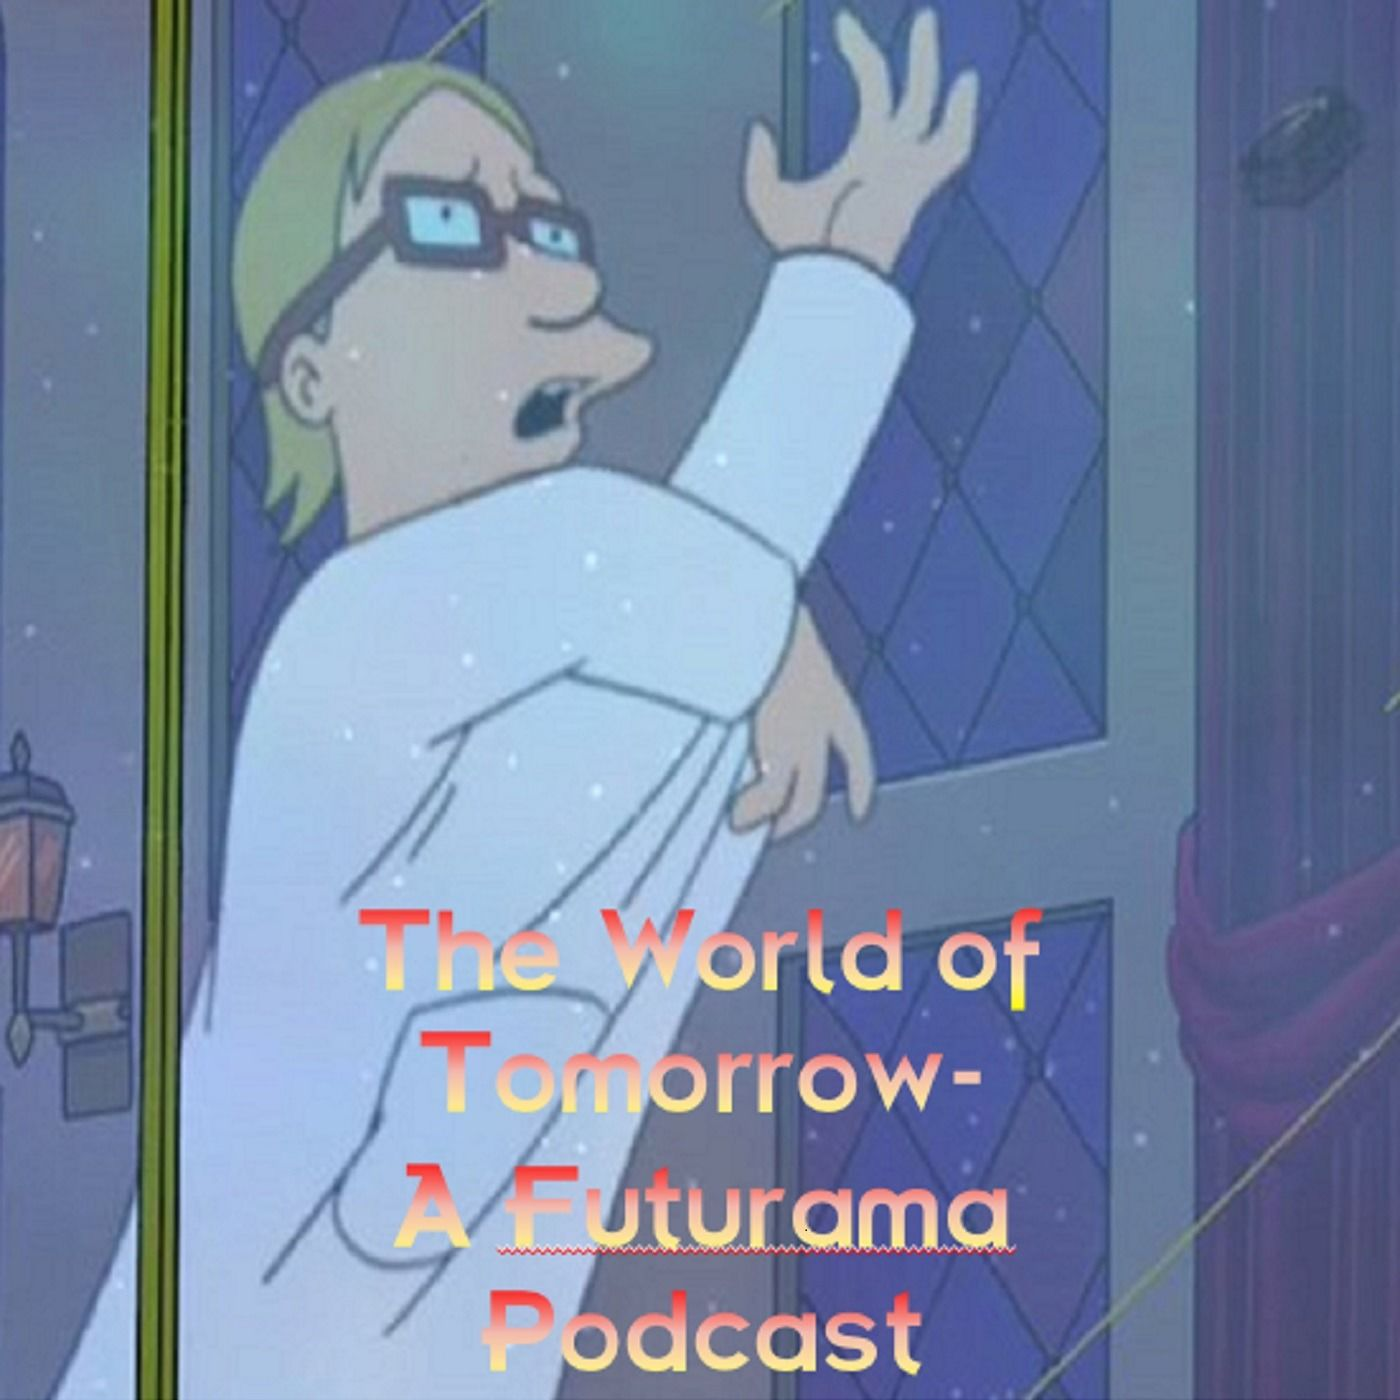 The World of Tomorrow Podcast